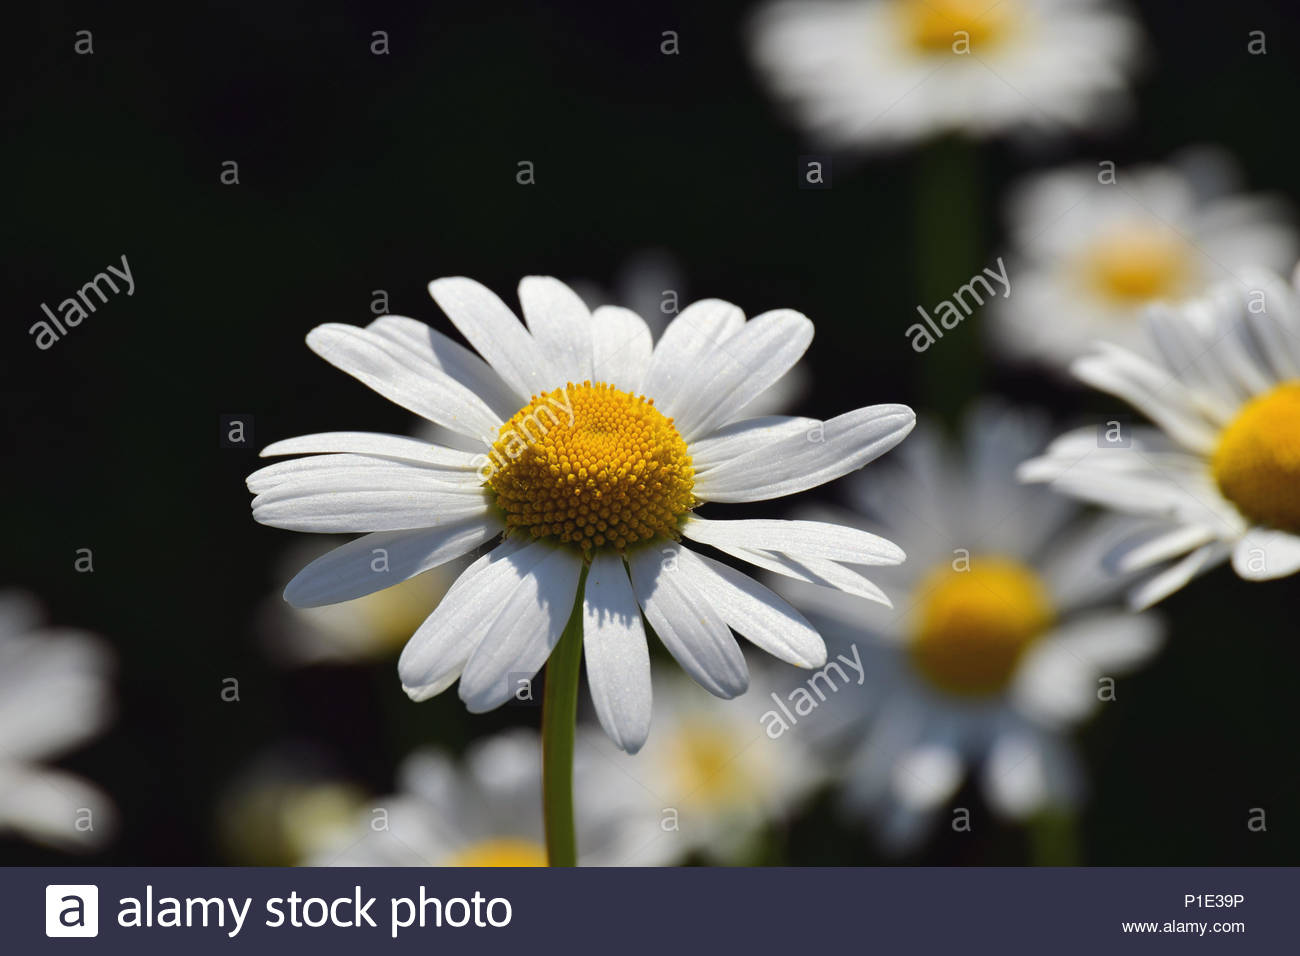 Chamomiles Flowers Field Daisies With White Leaves And A Yellow